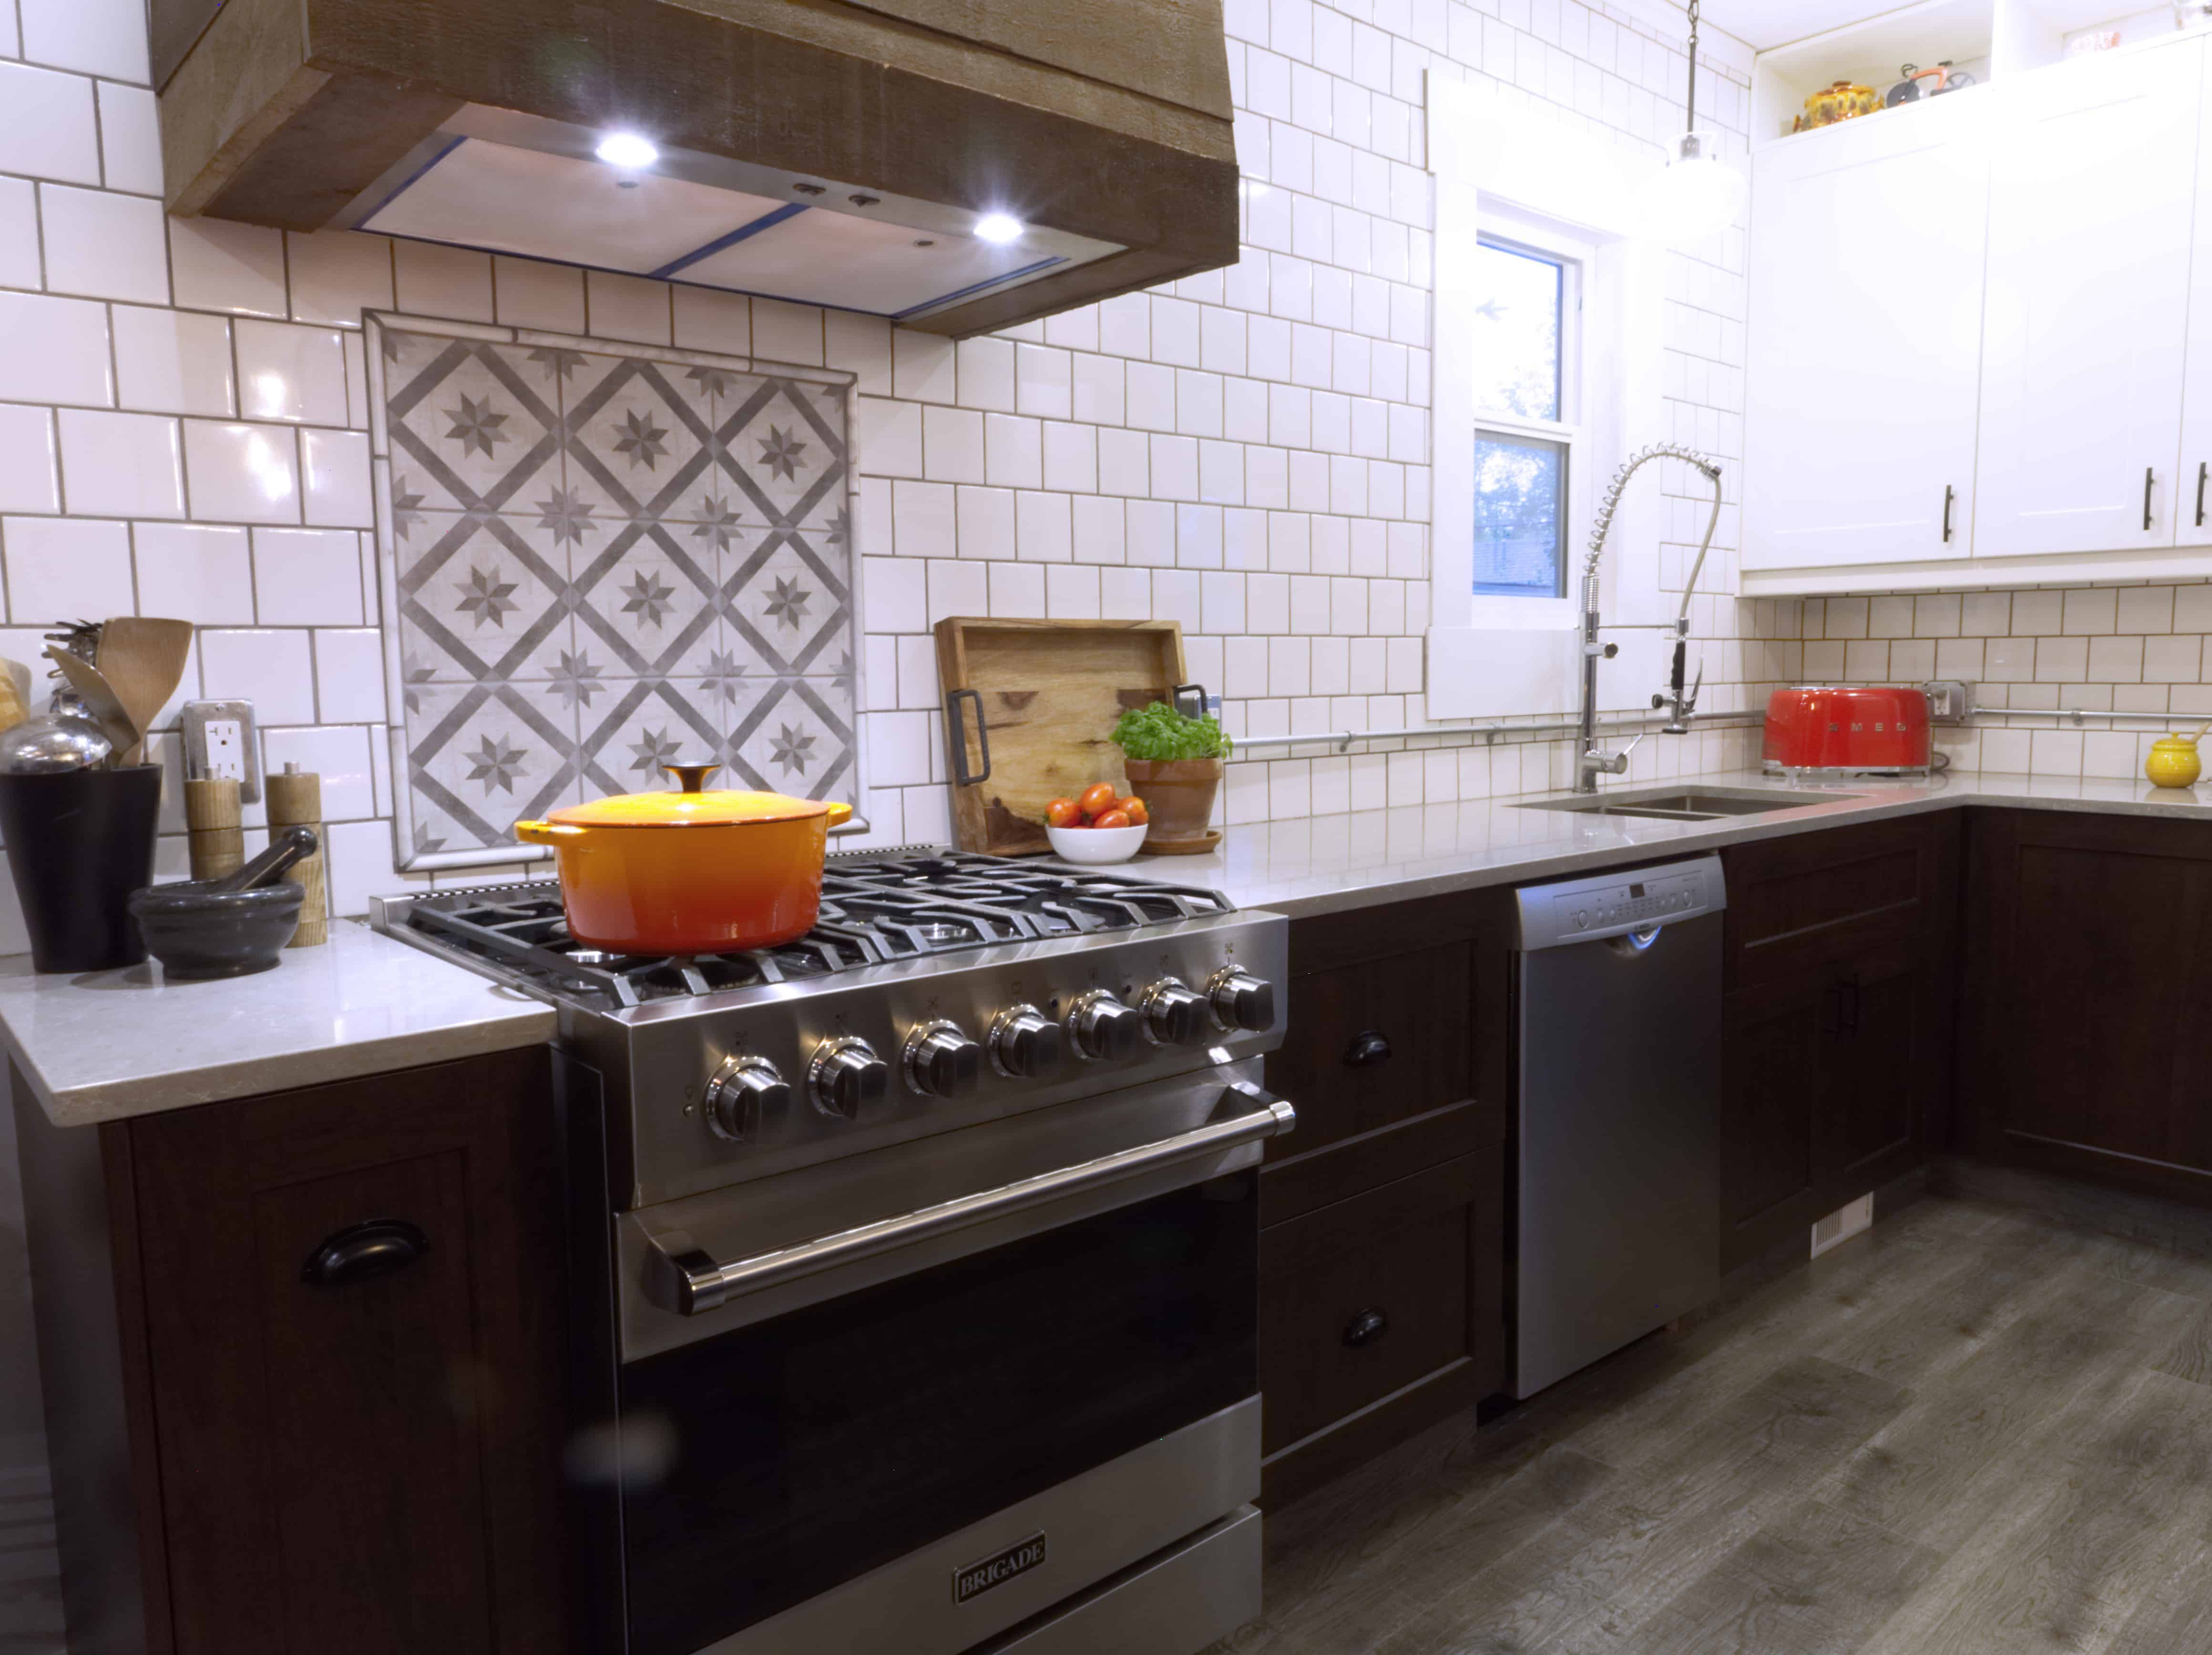 IKEA Kitchen review: Pros, cons, and overall quality - THE